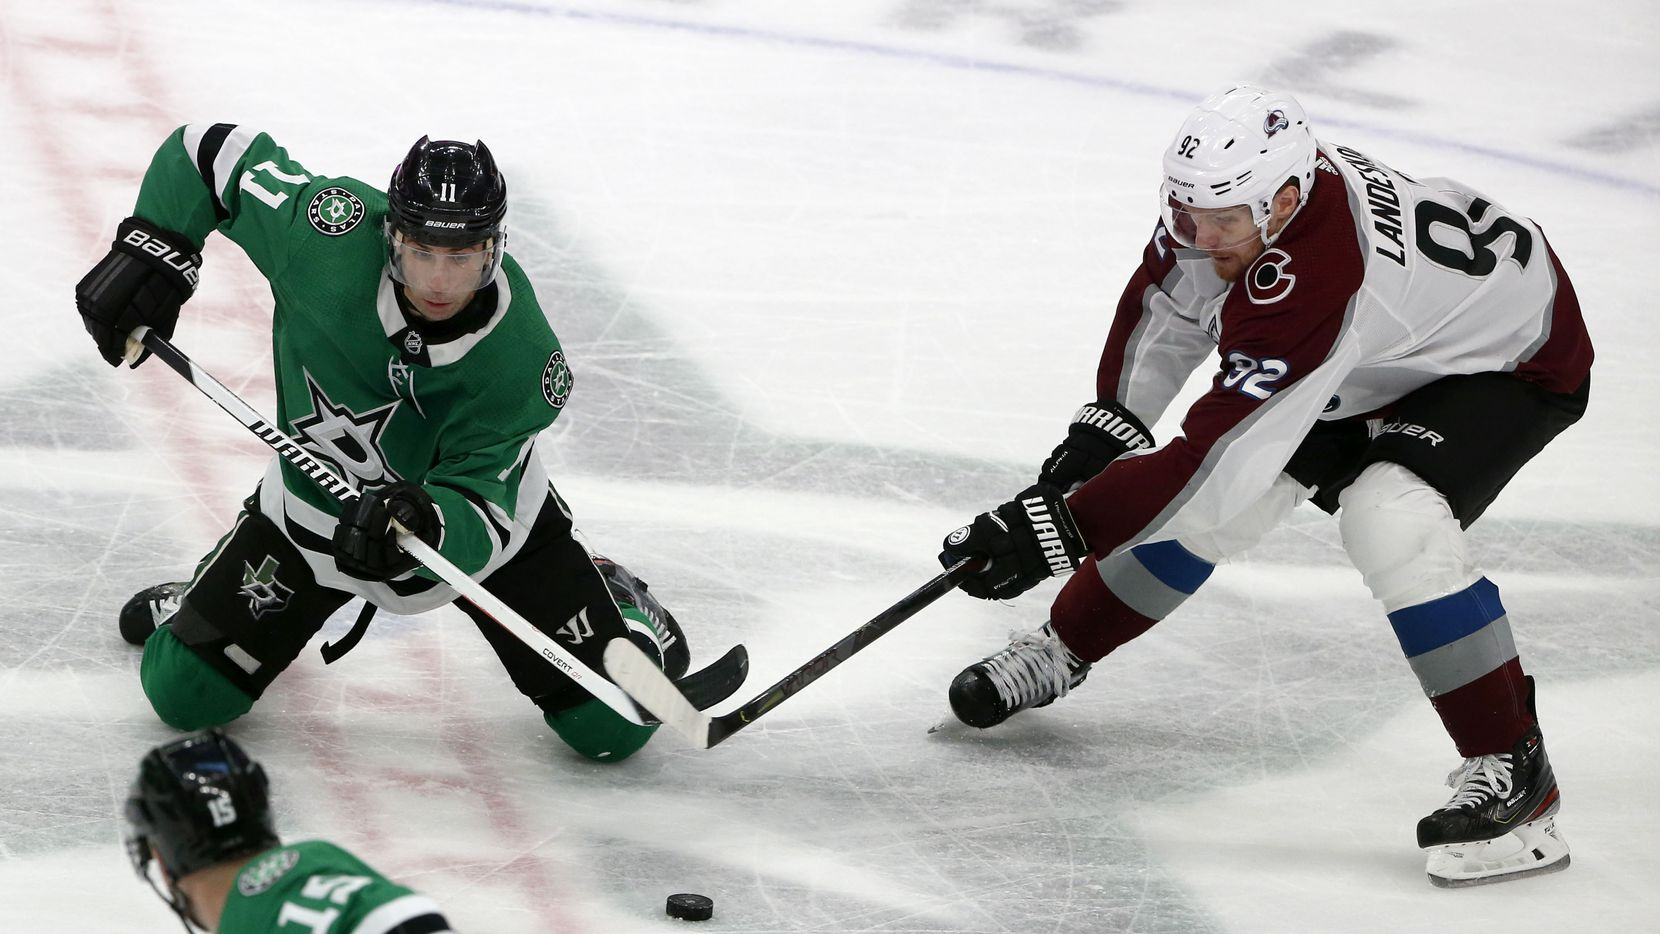 Dallas Stars center Andrew Cogliano (11) and Colorado Avalanche left wing Gabriel Landeskog (92) battle for the puck during the third period of an NHL hockey game in Dallas, Saturday, Dec. 28, 2019.